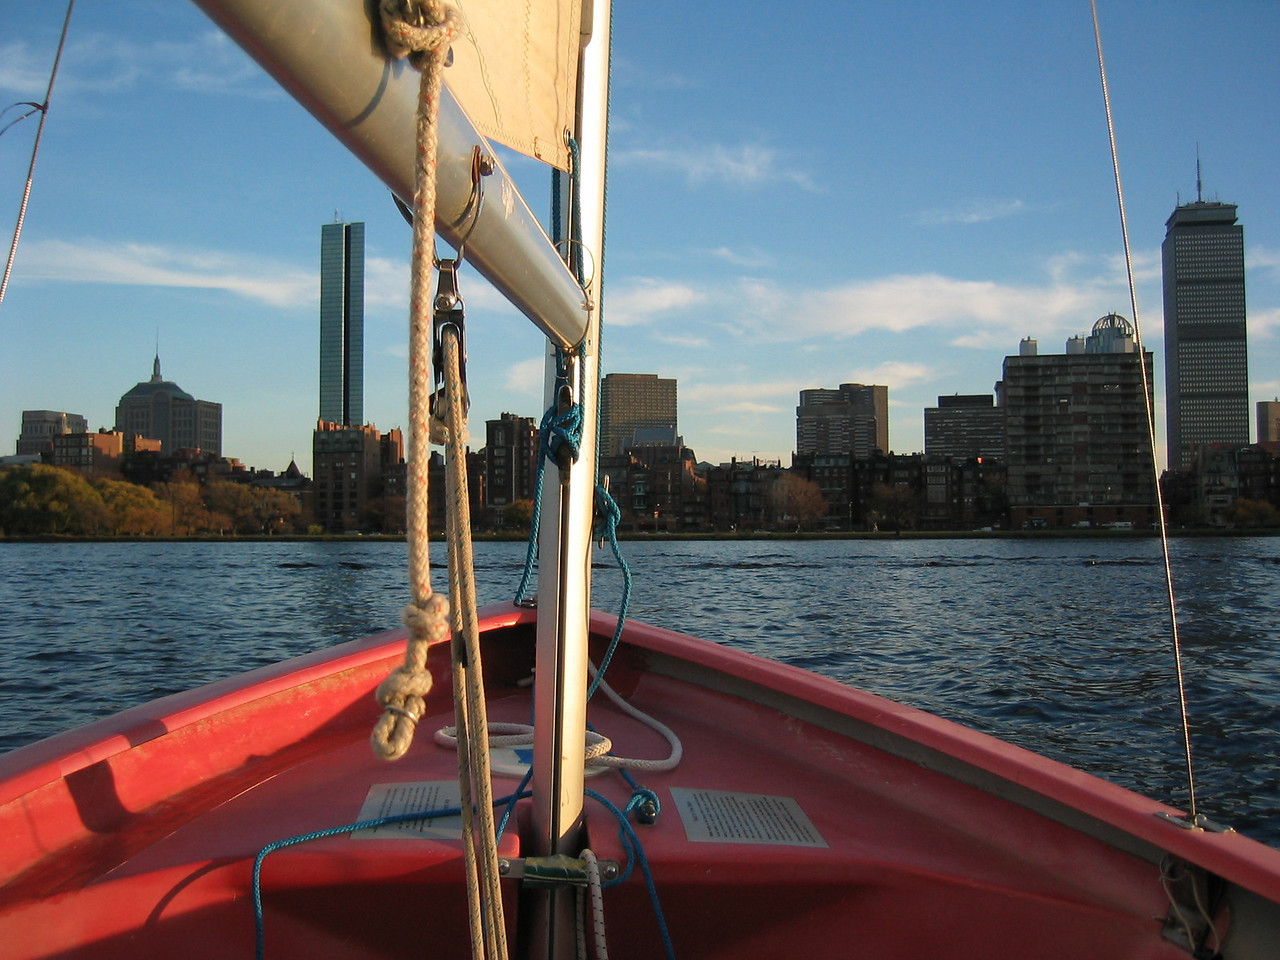 2003 11 07 Friday - Sailing on the Charles River @ MIT - Downtown Boston Financial District